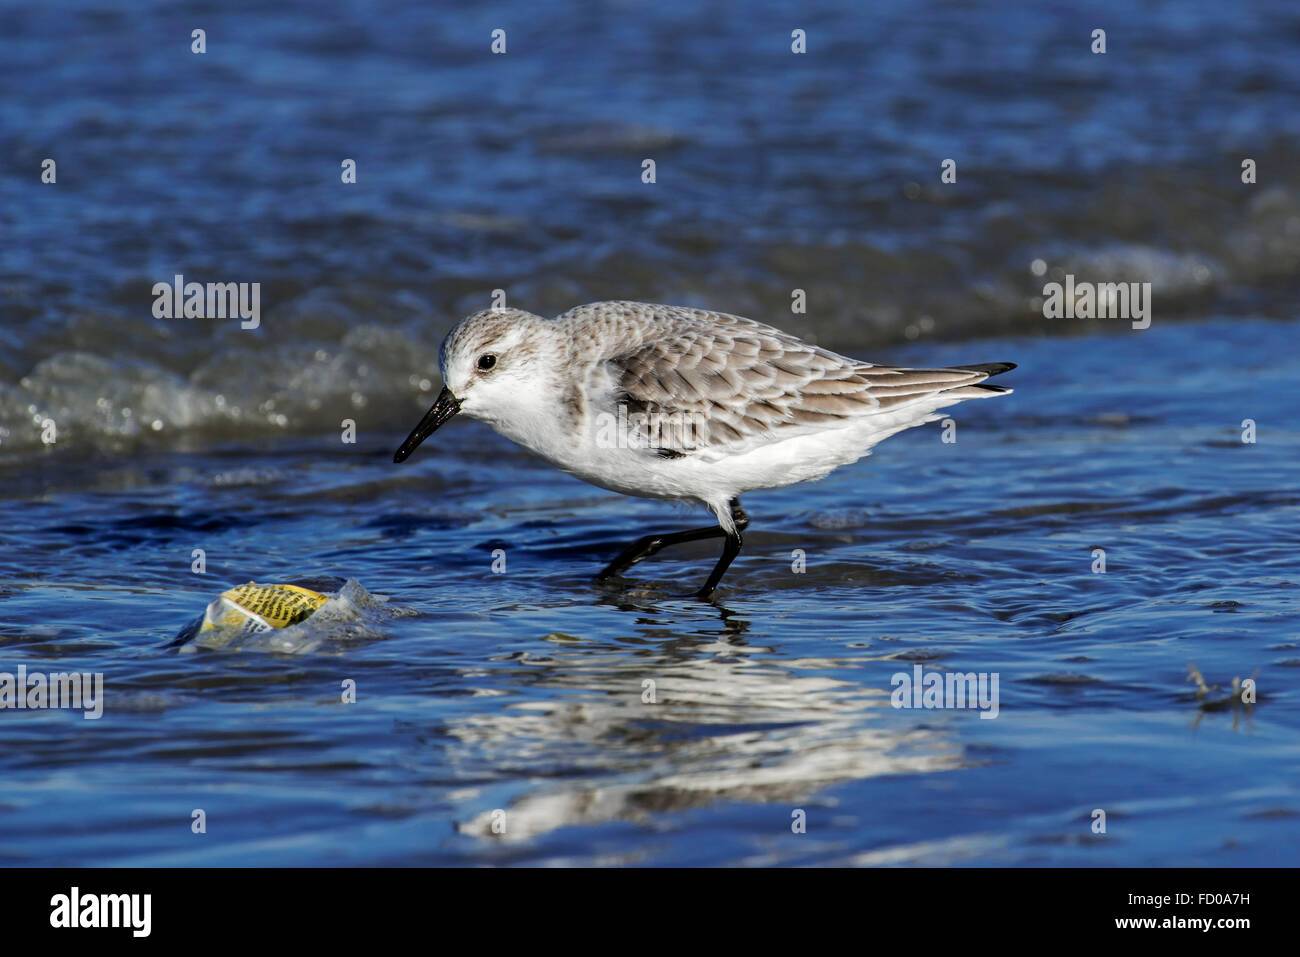 Sanderling (Calidris alba) in non-breeding plumage picking at plastic wrapping washed on beach along North Sea coast - Stock Image